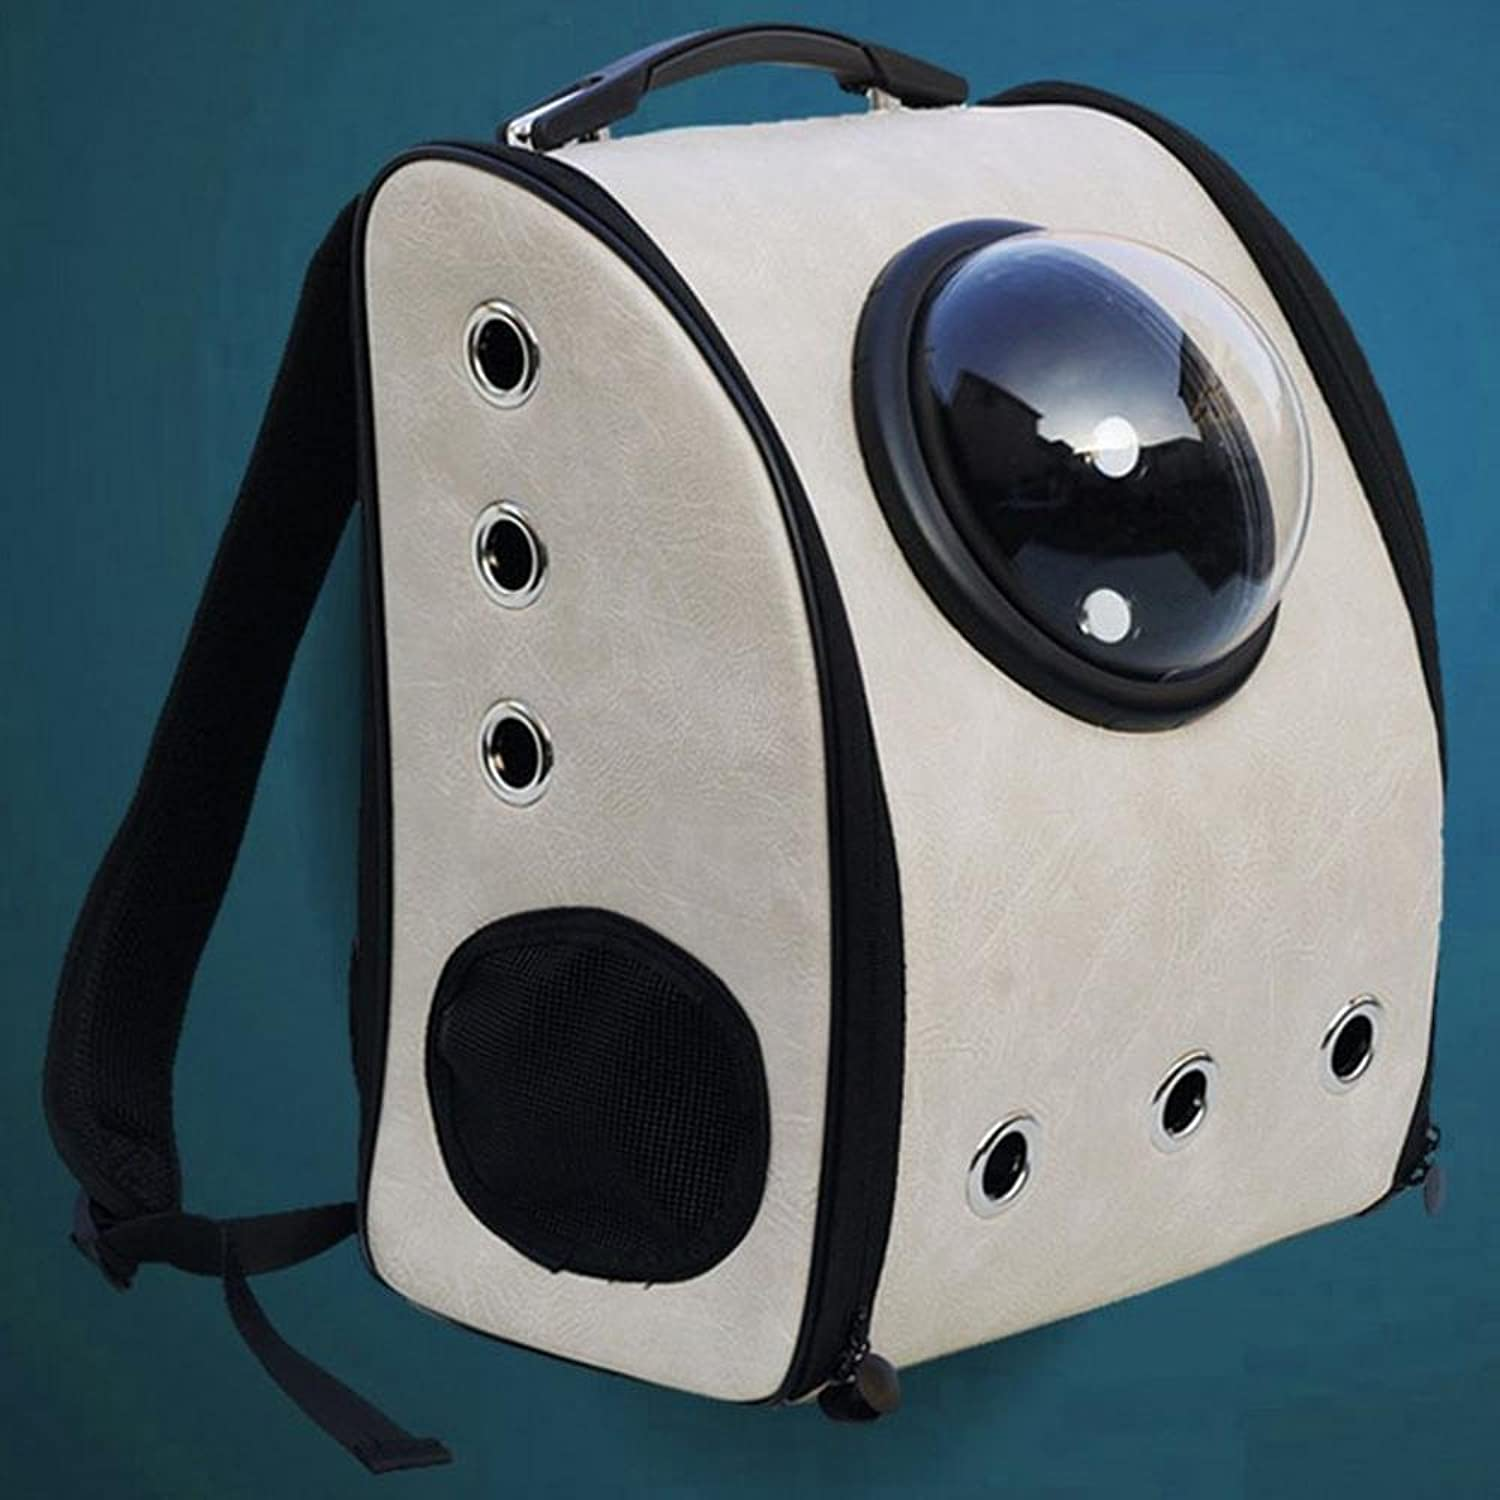 Daeou Pet Backpack A Square Space Bag Out of a Portable Space Capsule Breathable Shoulder pet Backpack 32  29  42cm PU